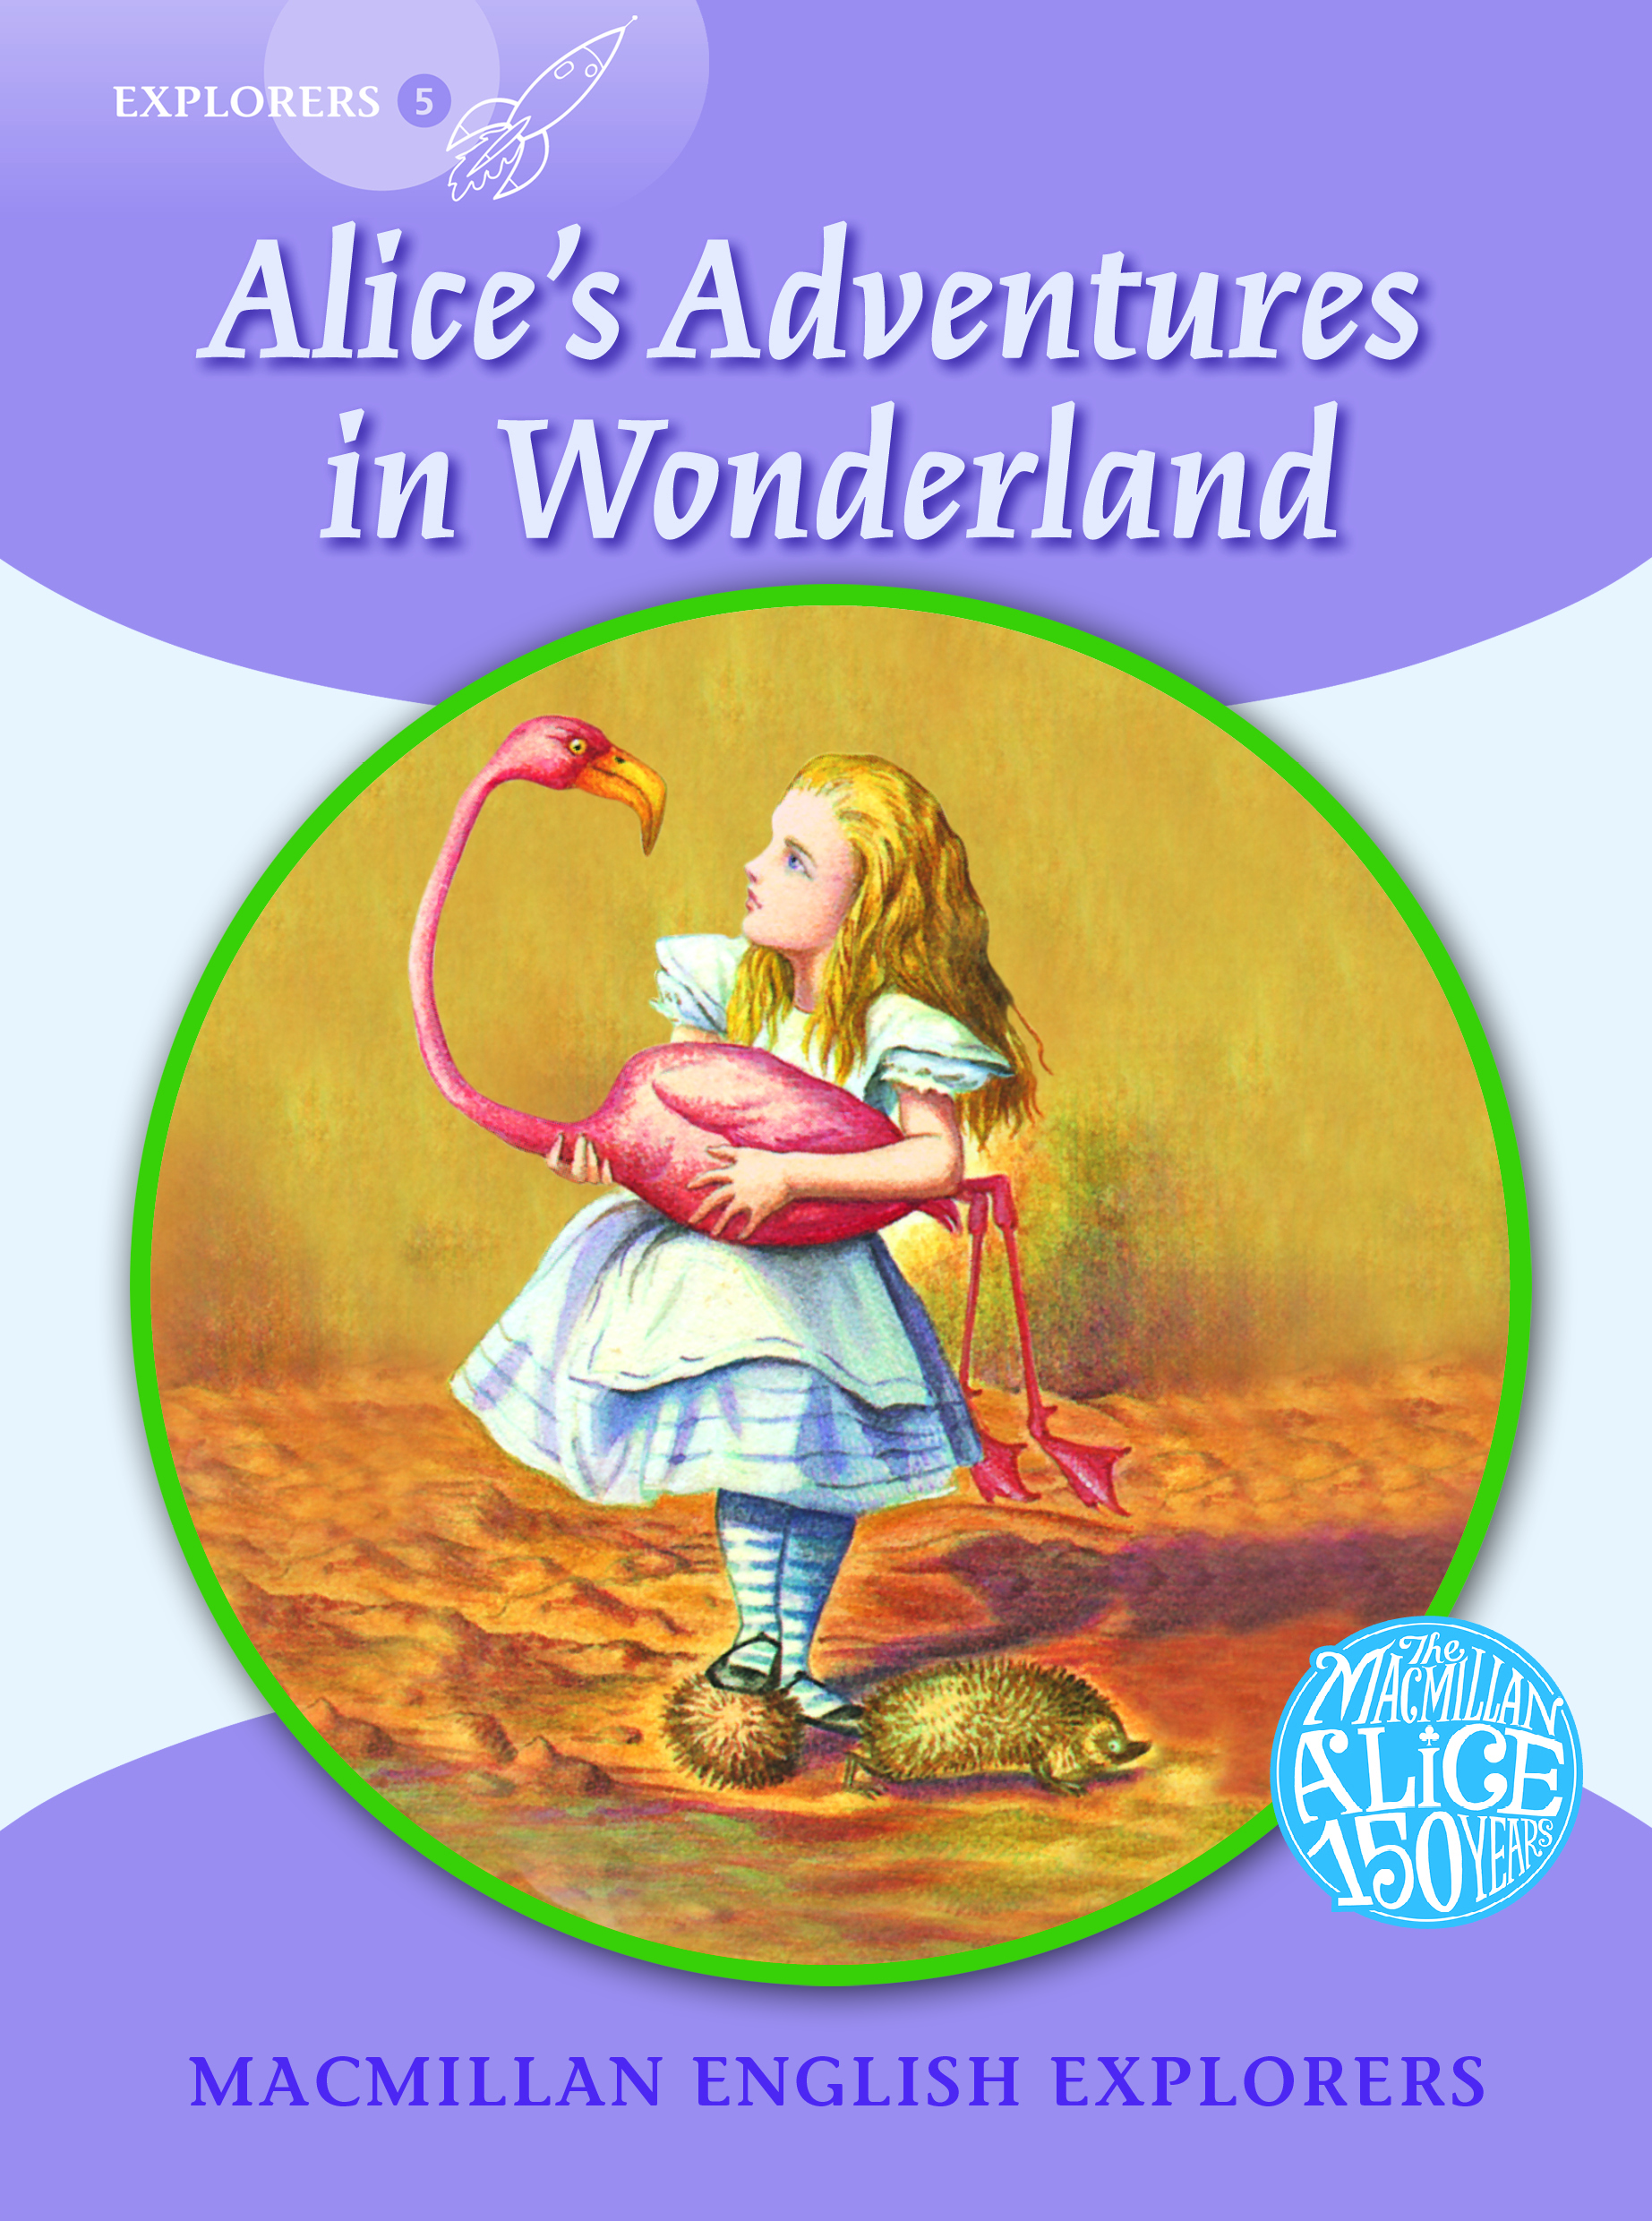 English Explorers 5: Alice